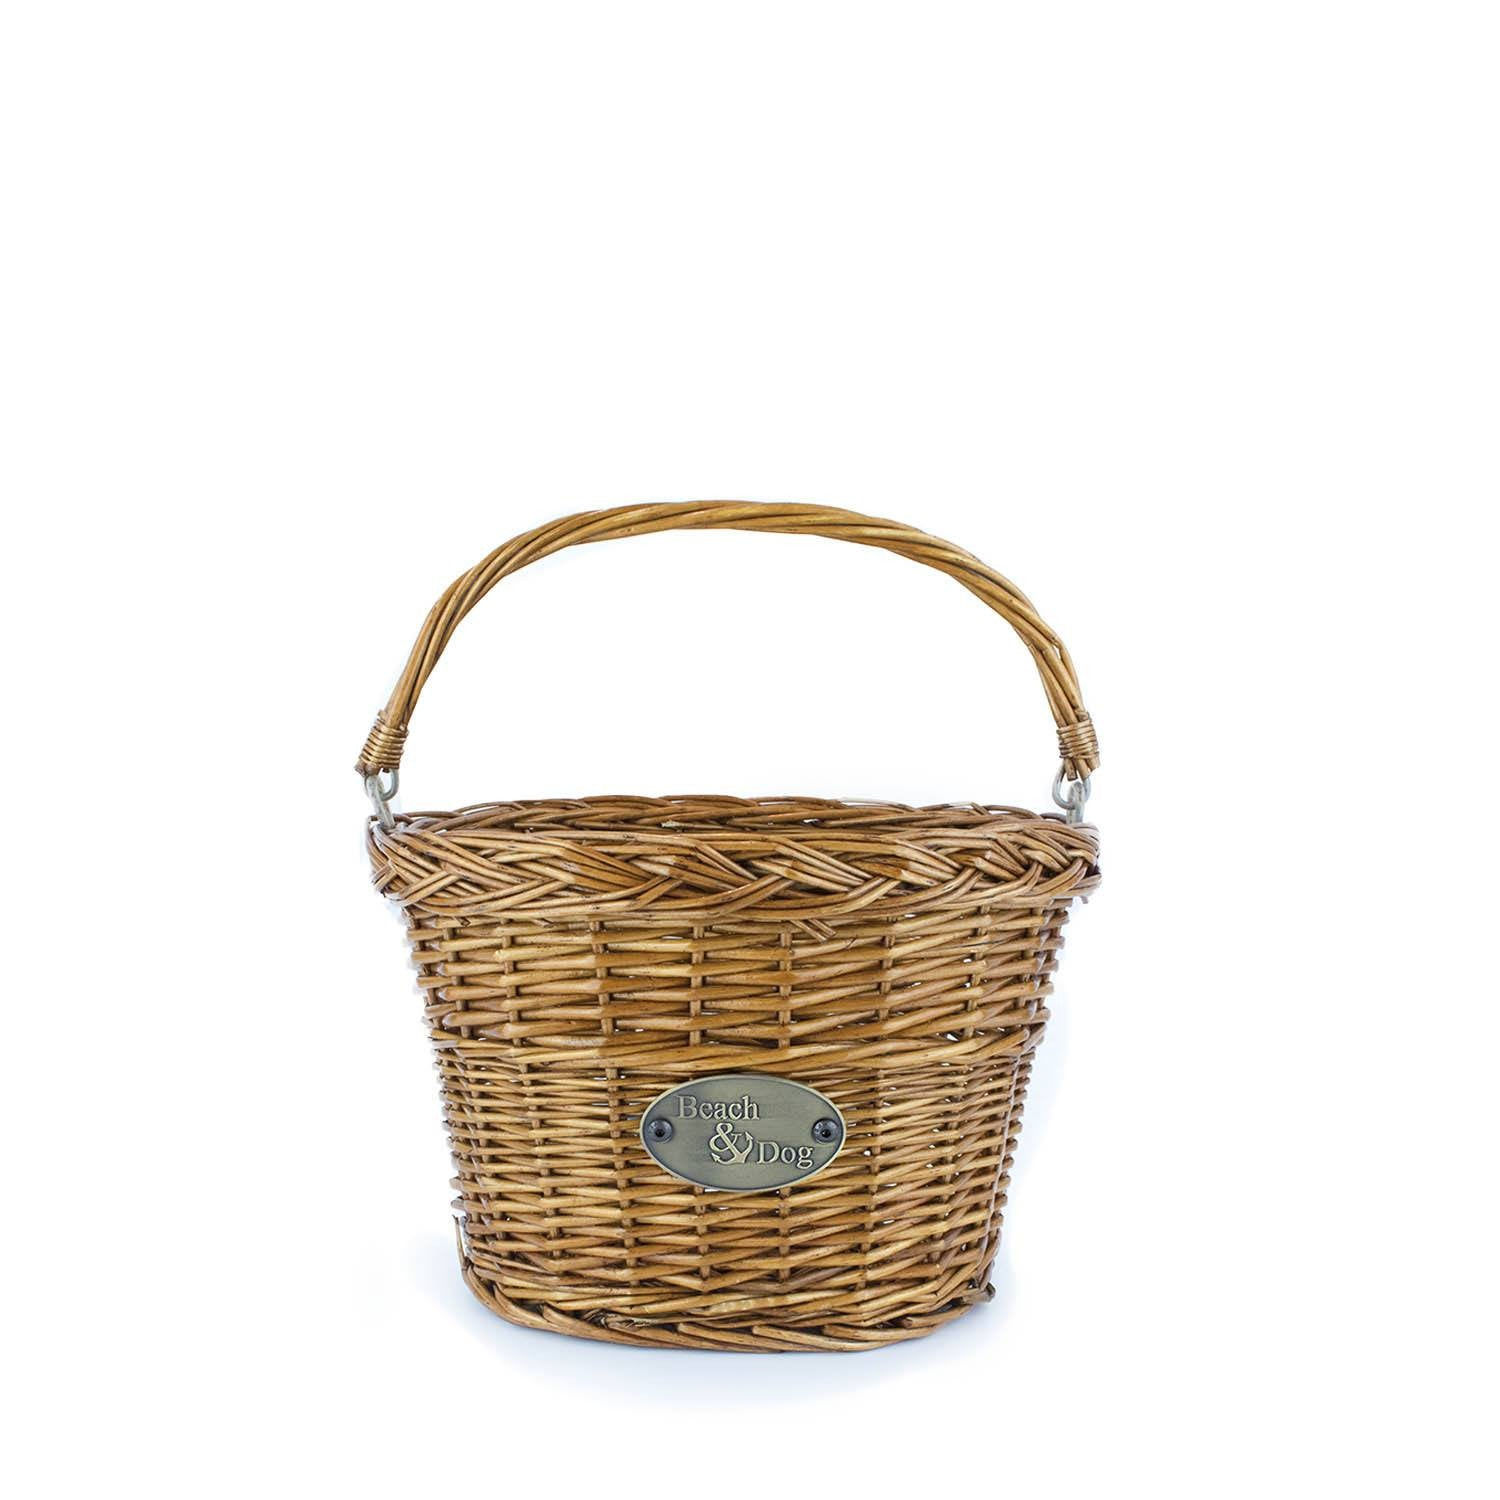 Makena Front Mount Bike Basket - Beach & Dog Co.